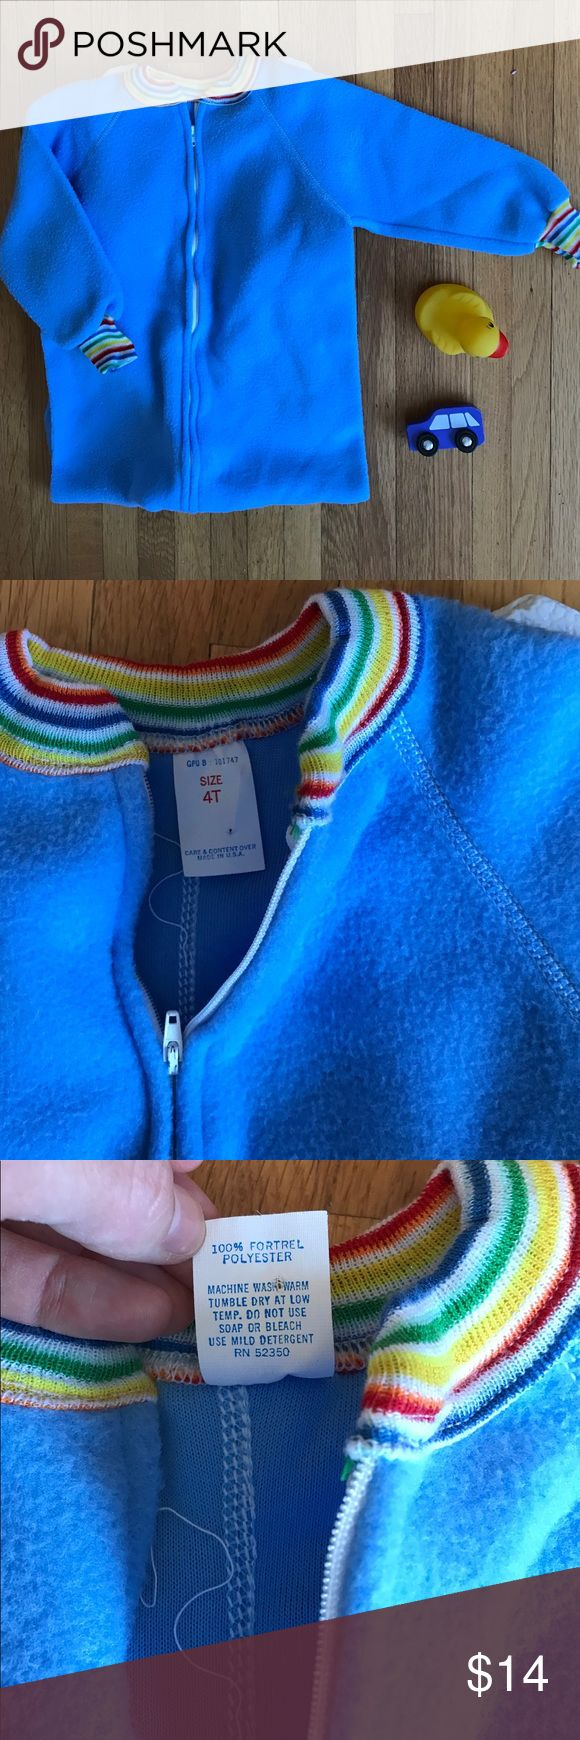 Vintage rainbow footie PJ onesie Vintage rainbow footie PJ onesie of the softest possible material. Made in the USA and the footies are a heavier duty material than they're made of now. One stain on the left arm- see photo. Otherwise in wonderful condition! Vintage Pajamas